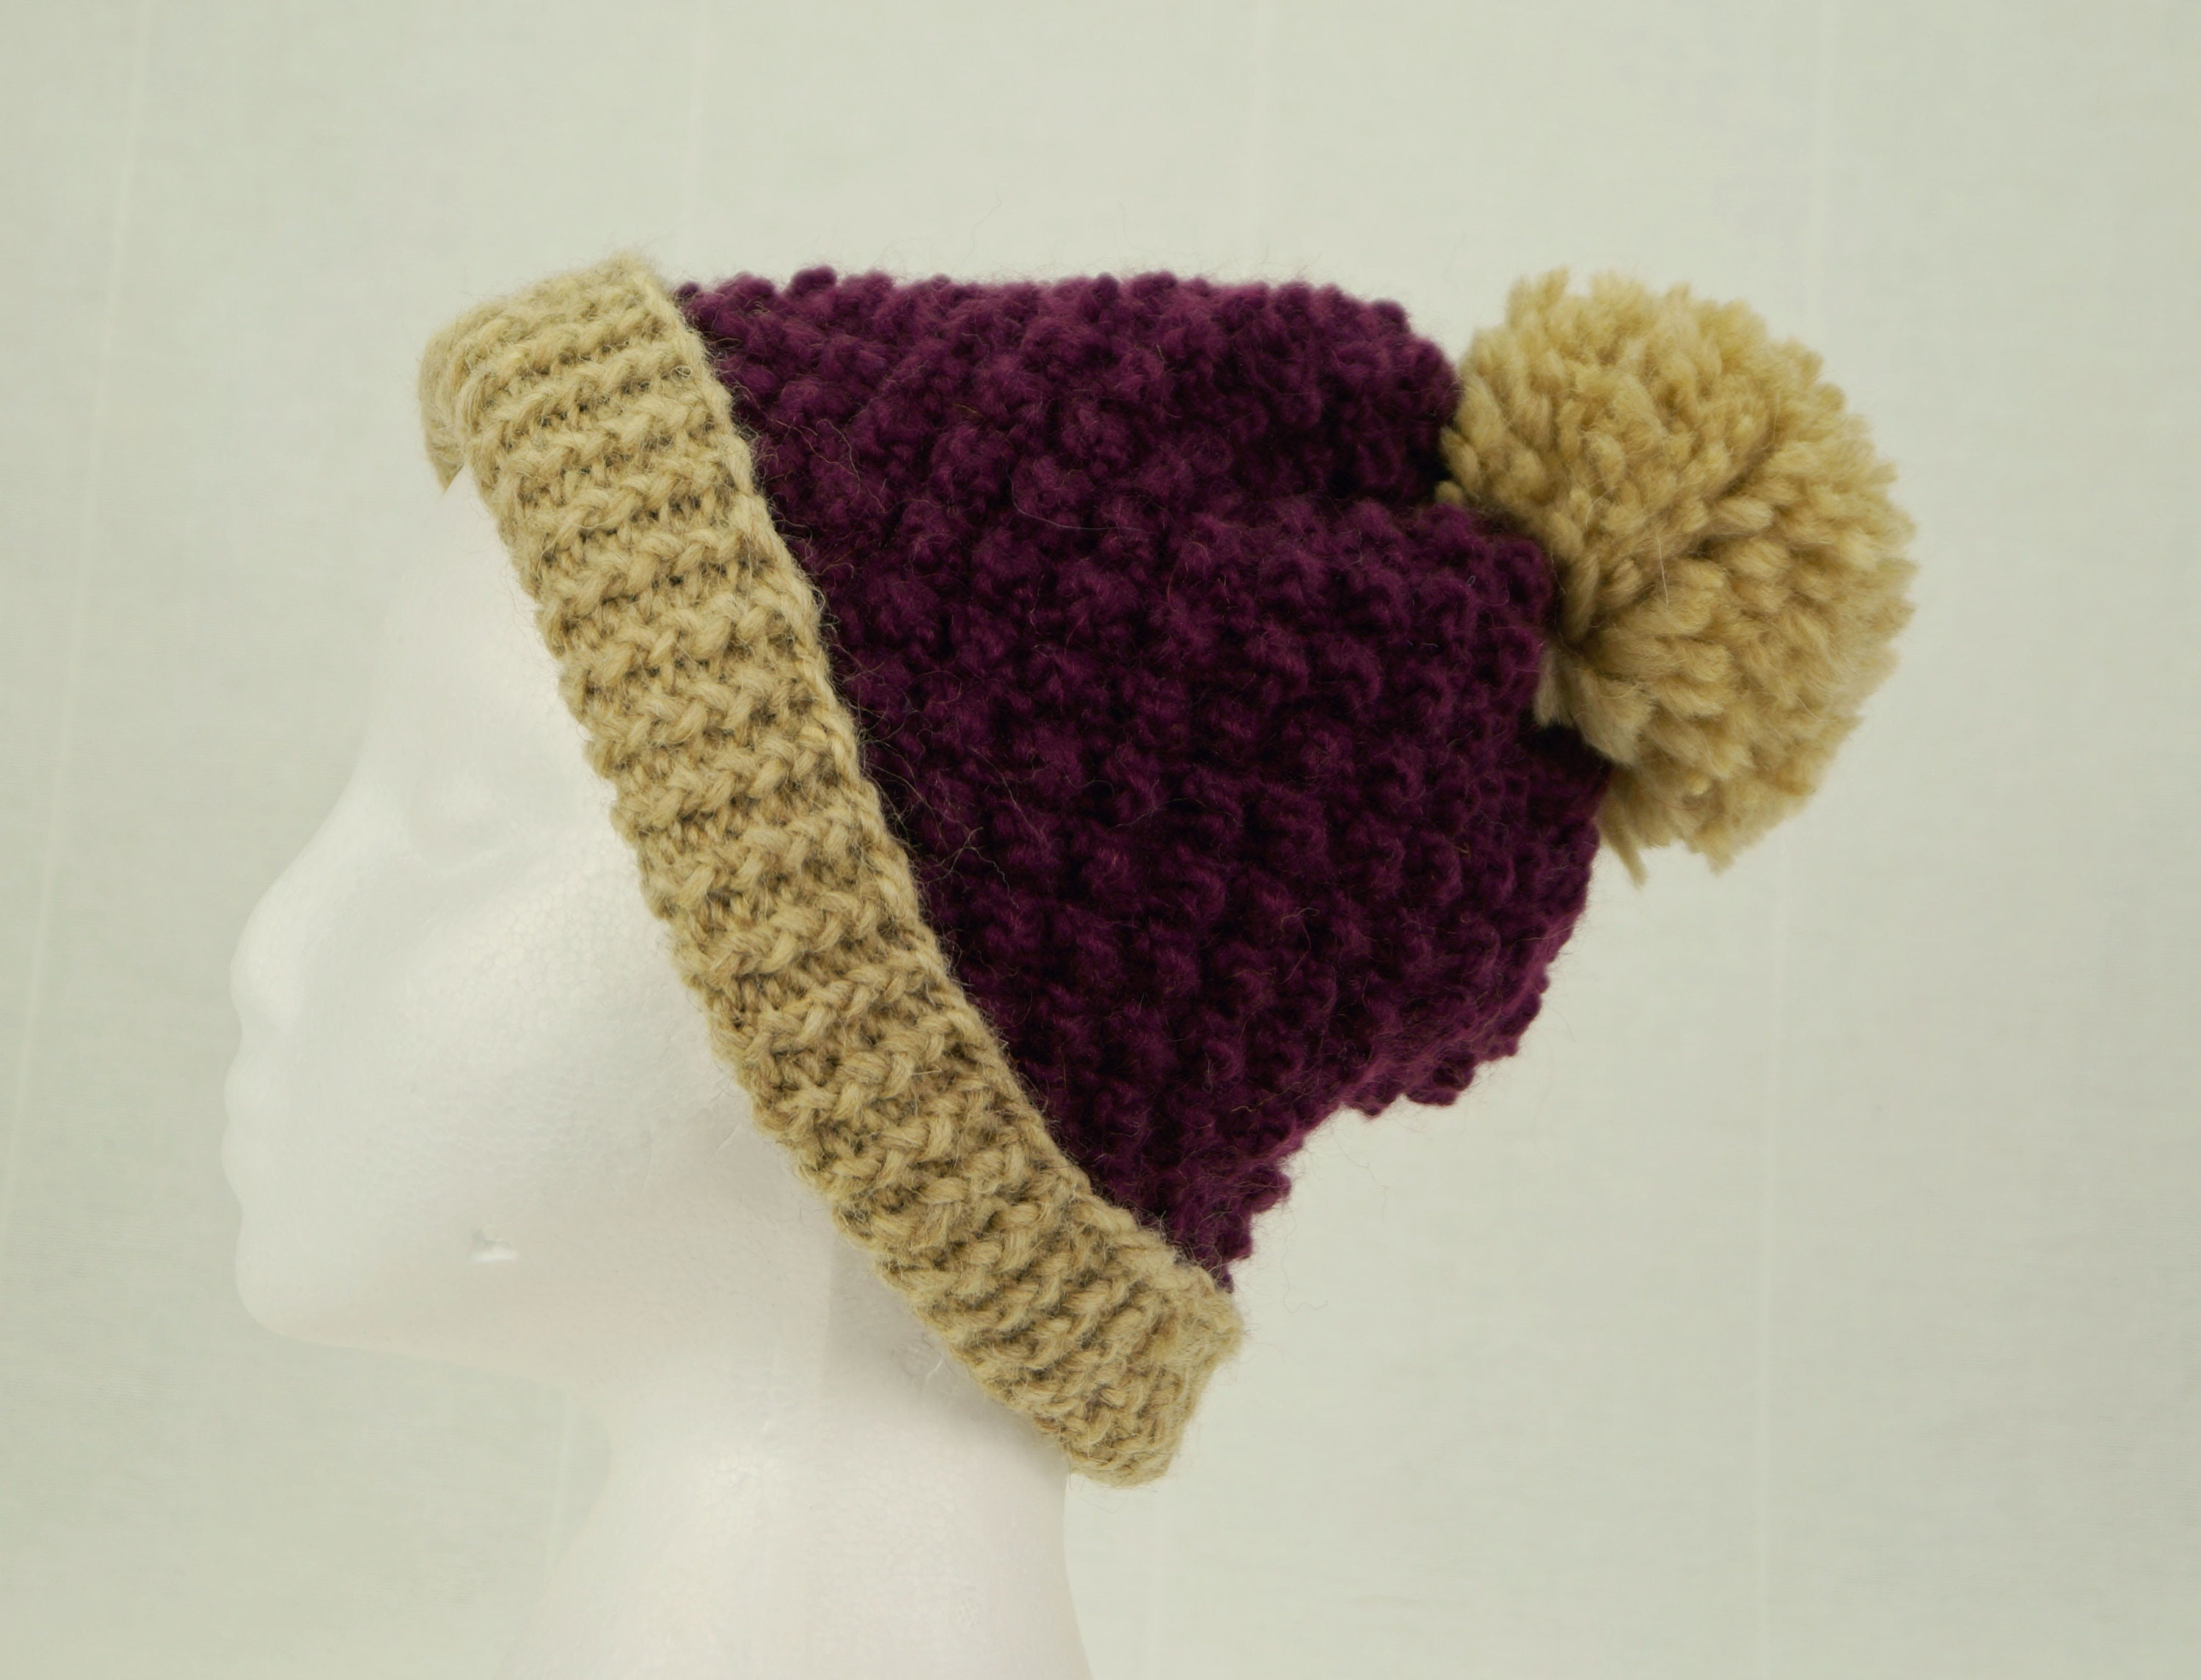 d98d4211cd8 Knitted purple hat Chunky knit beanie Lambswool knit hat